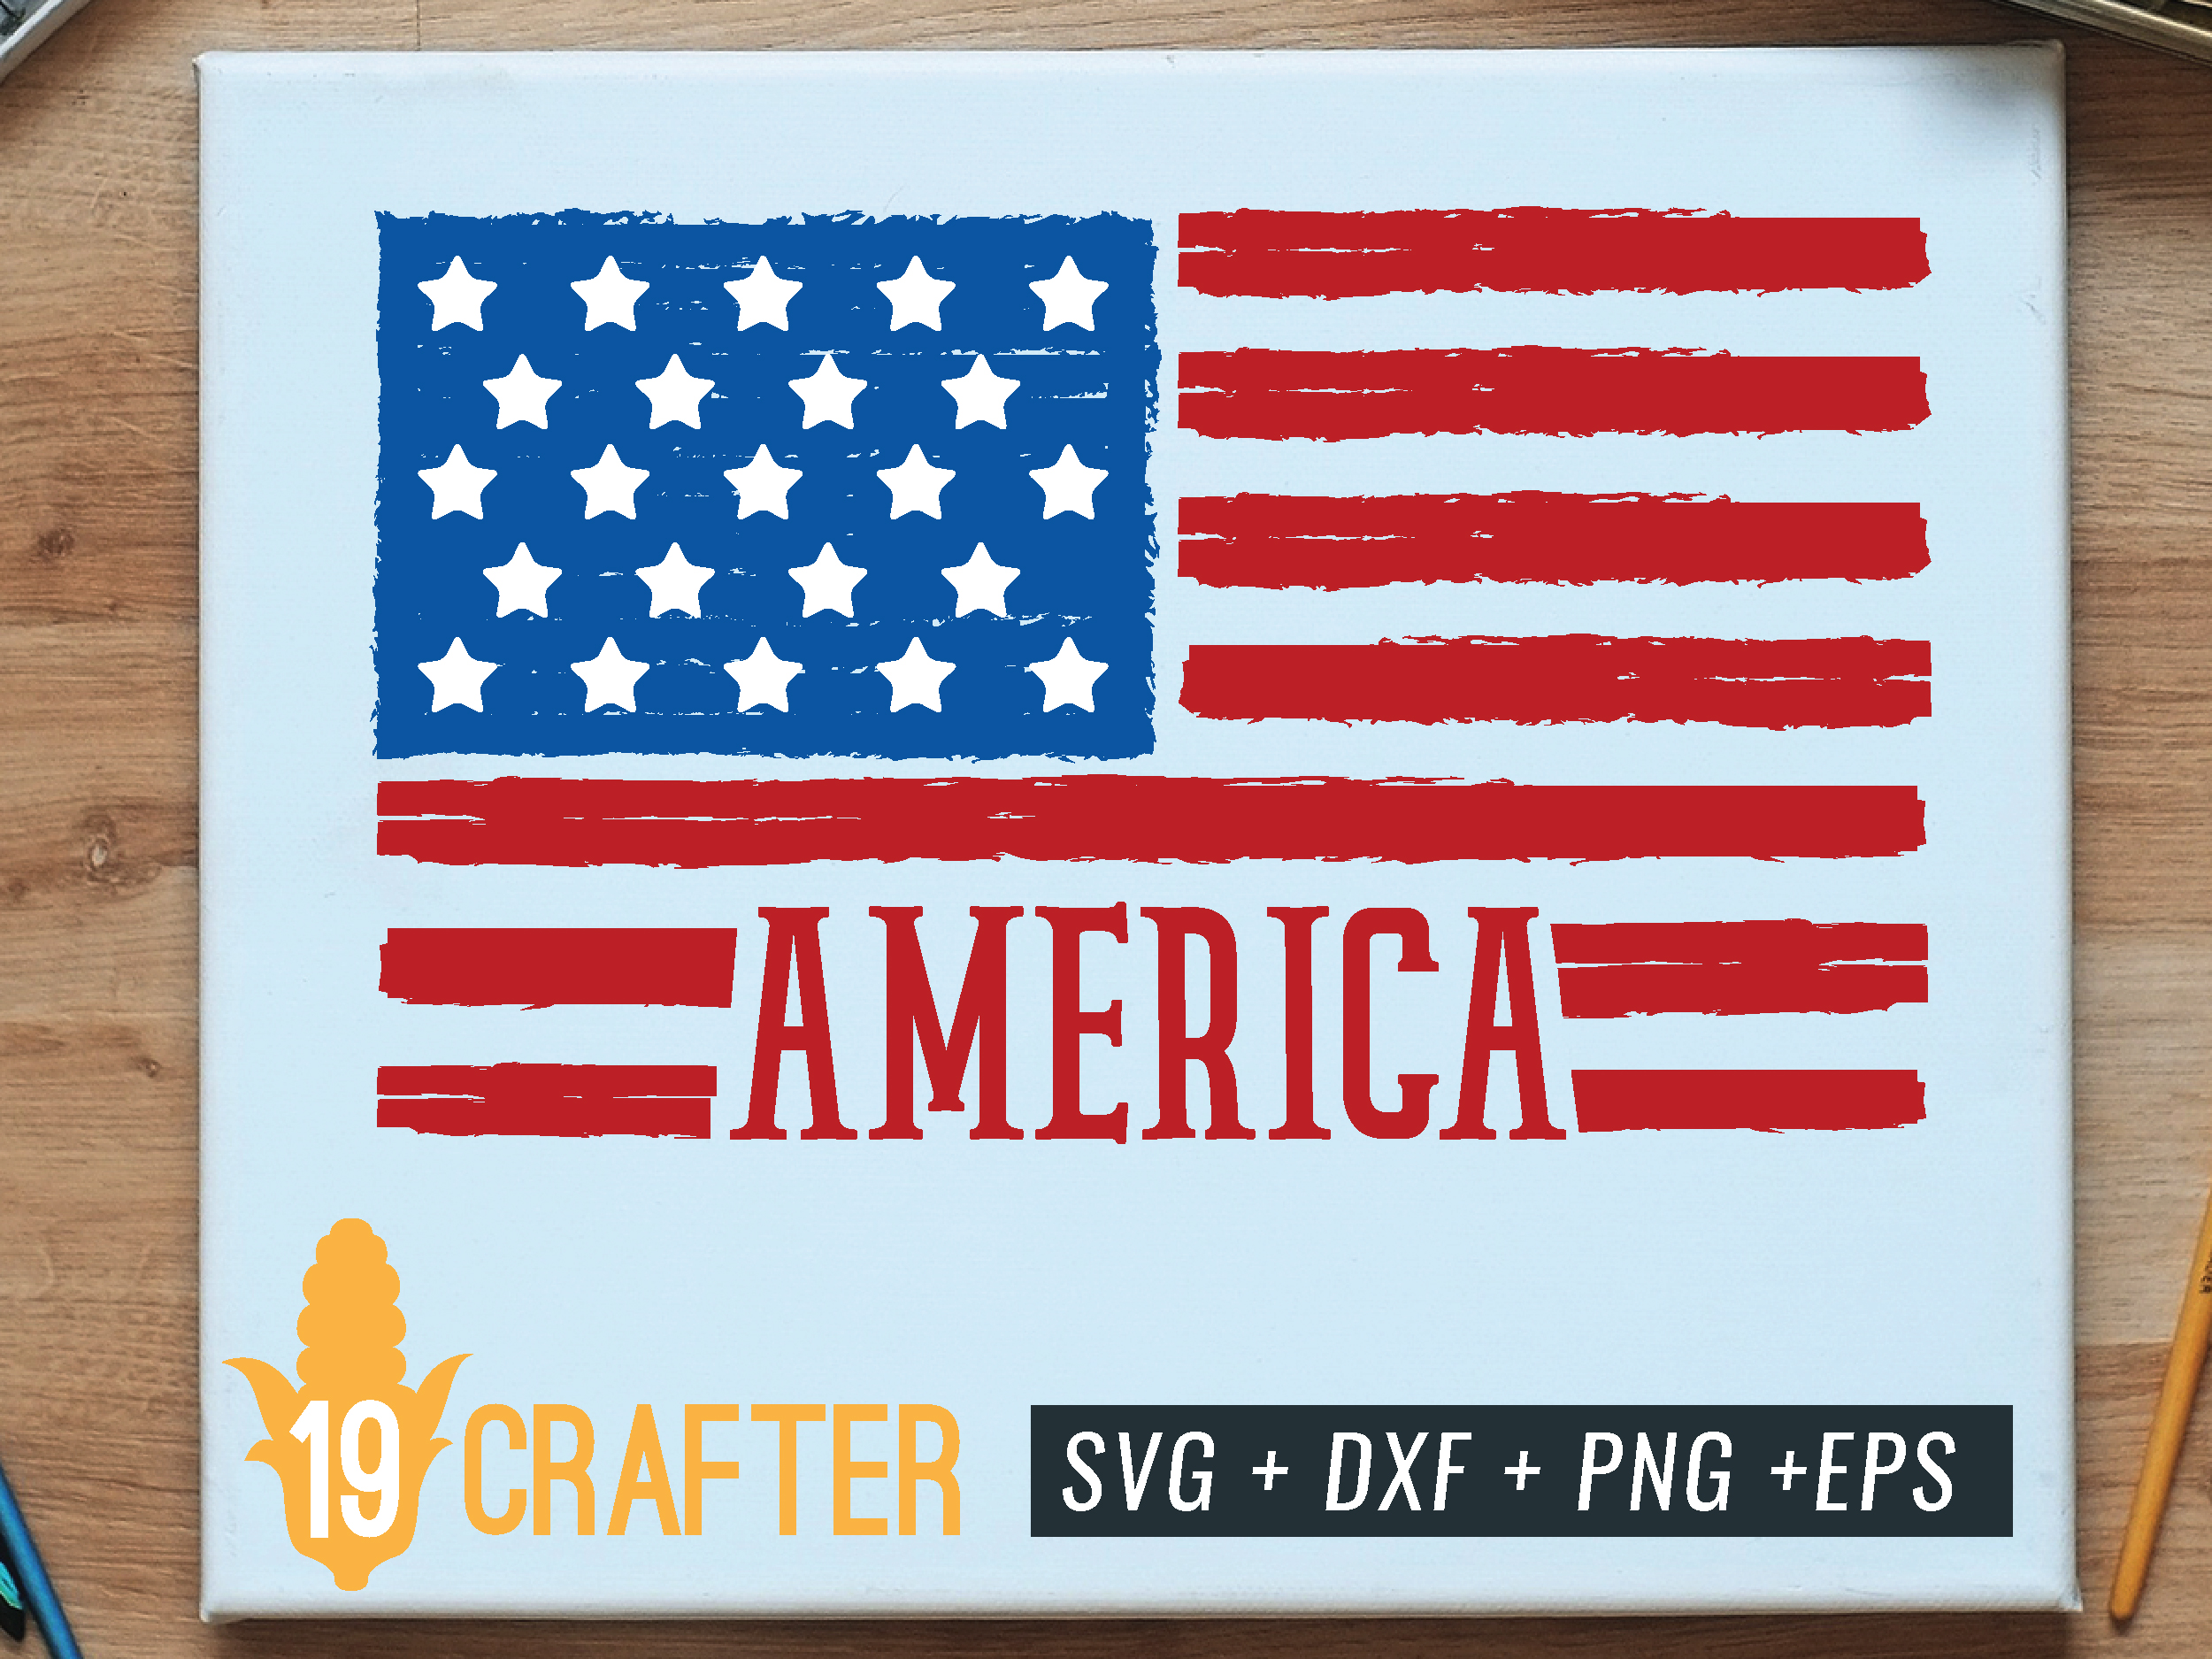 Download Free Distressed American Flag Grafik Von Great19 Creative Fabrica for Cricut Explore, Silhouette and other cutting machines.